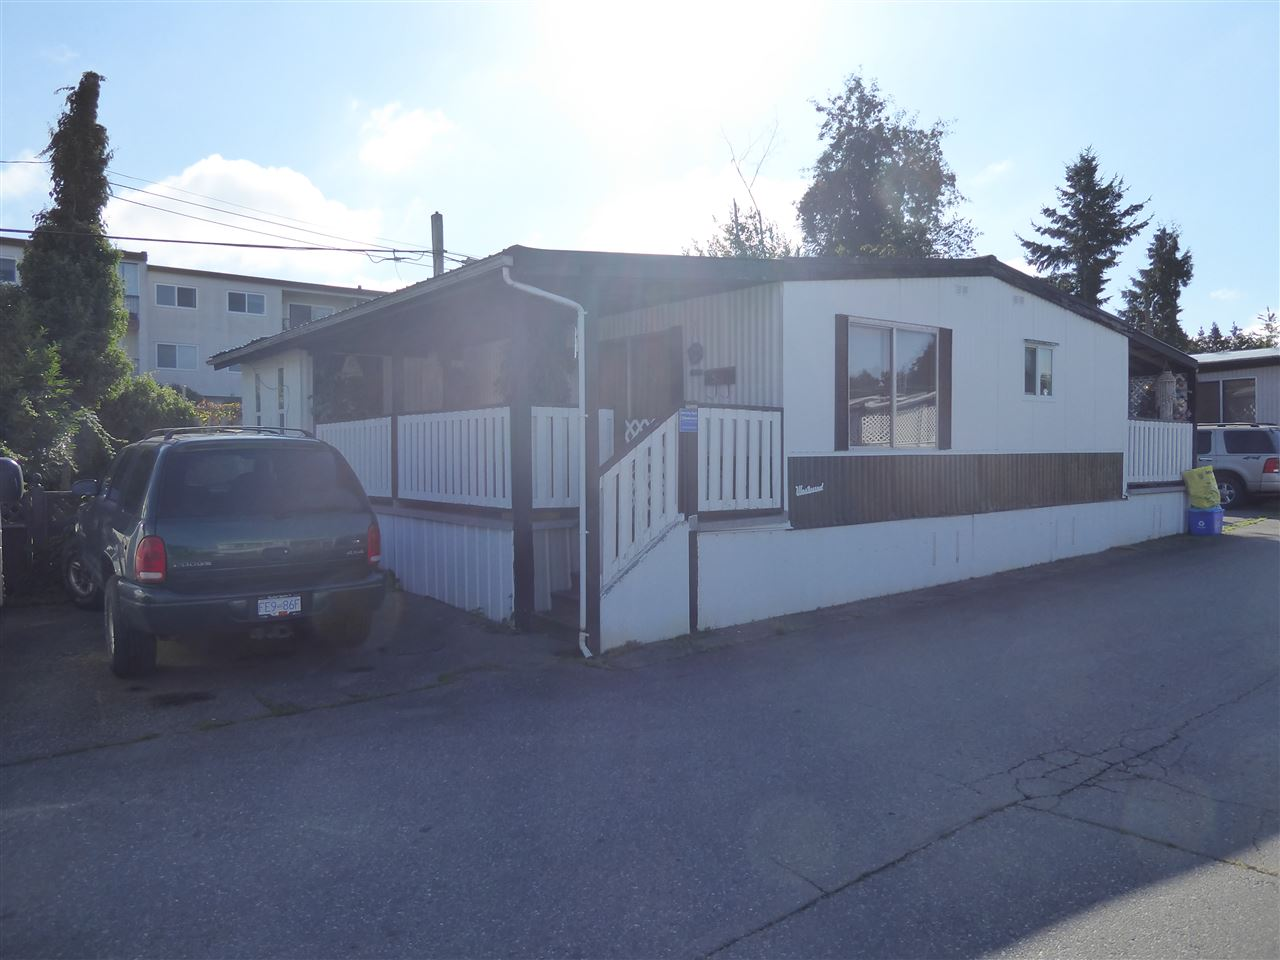 doublewide in Aldergrove park close to everything includes all appliances yes this is affordable living. neat a clean move in ready have your own place for a change take a look at this one